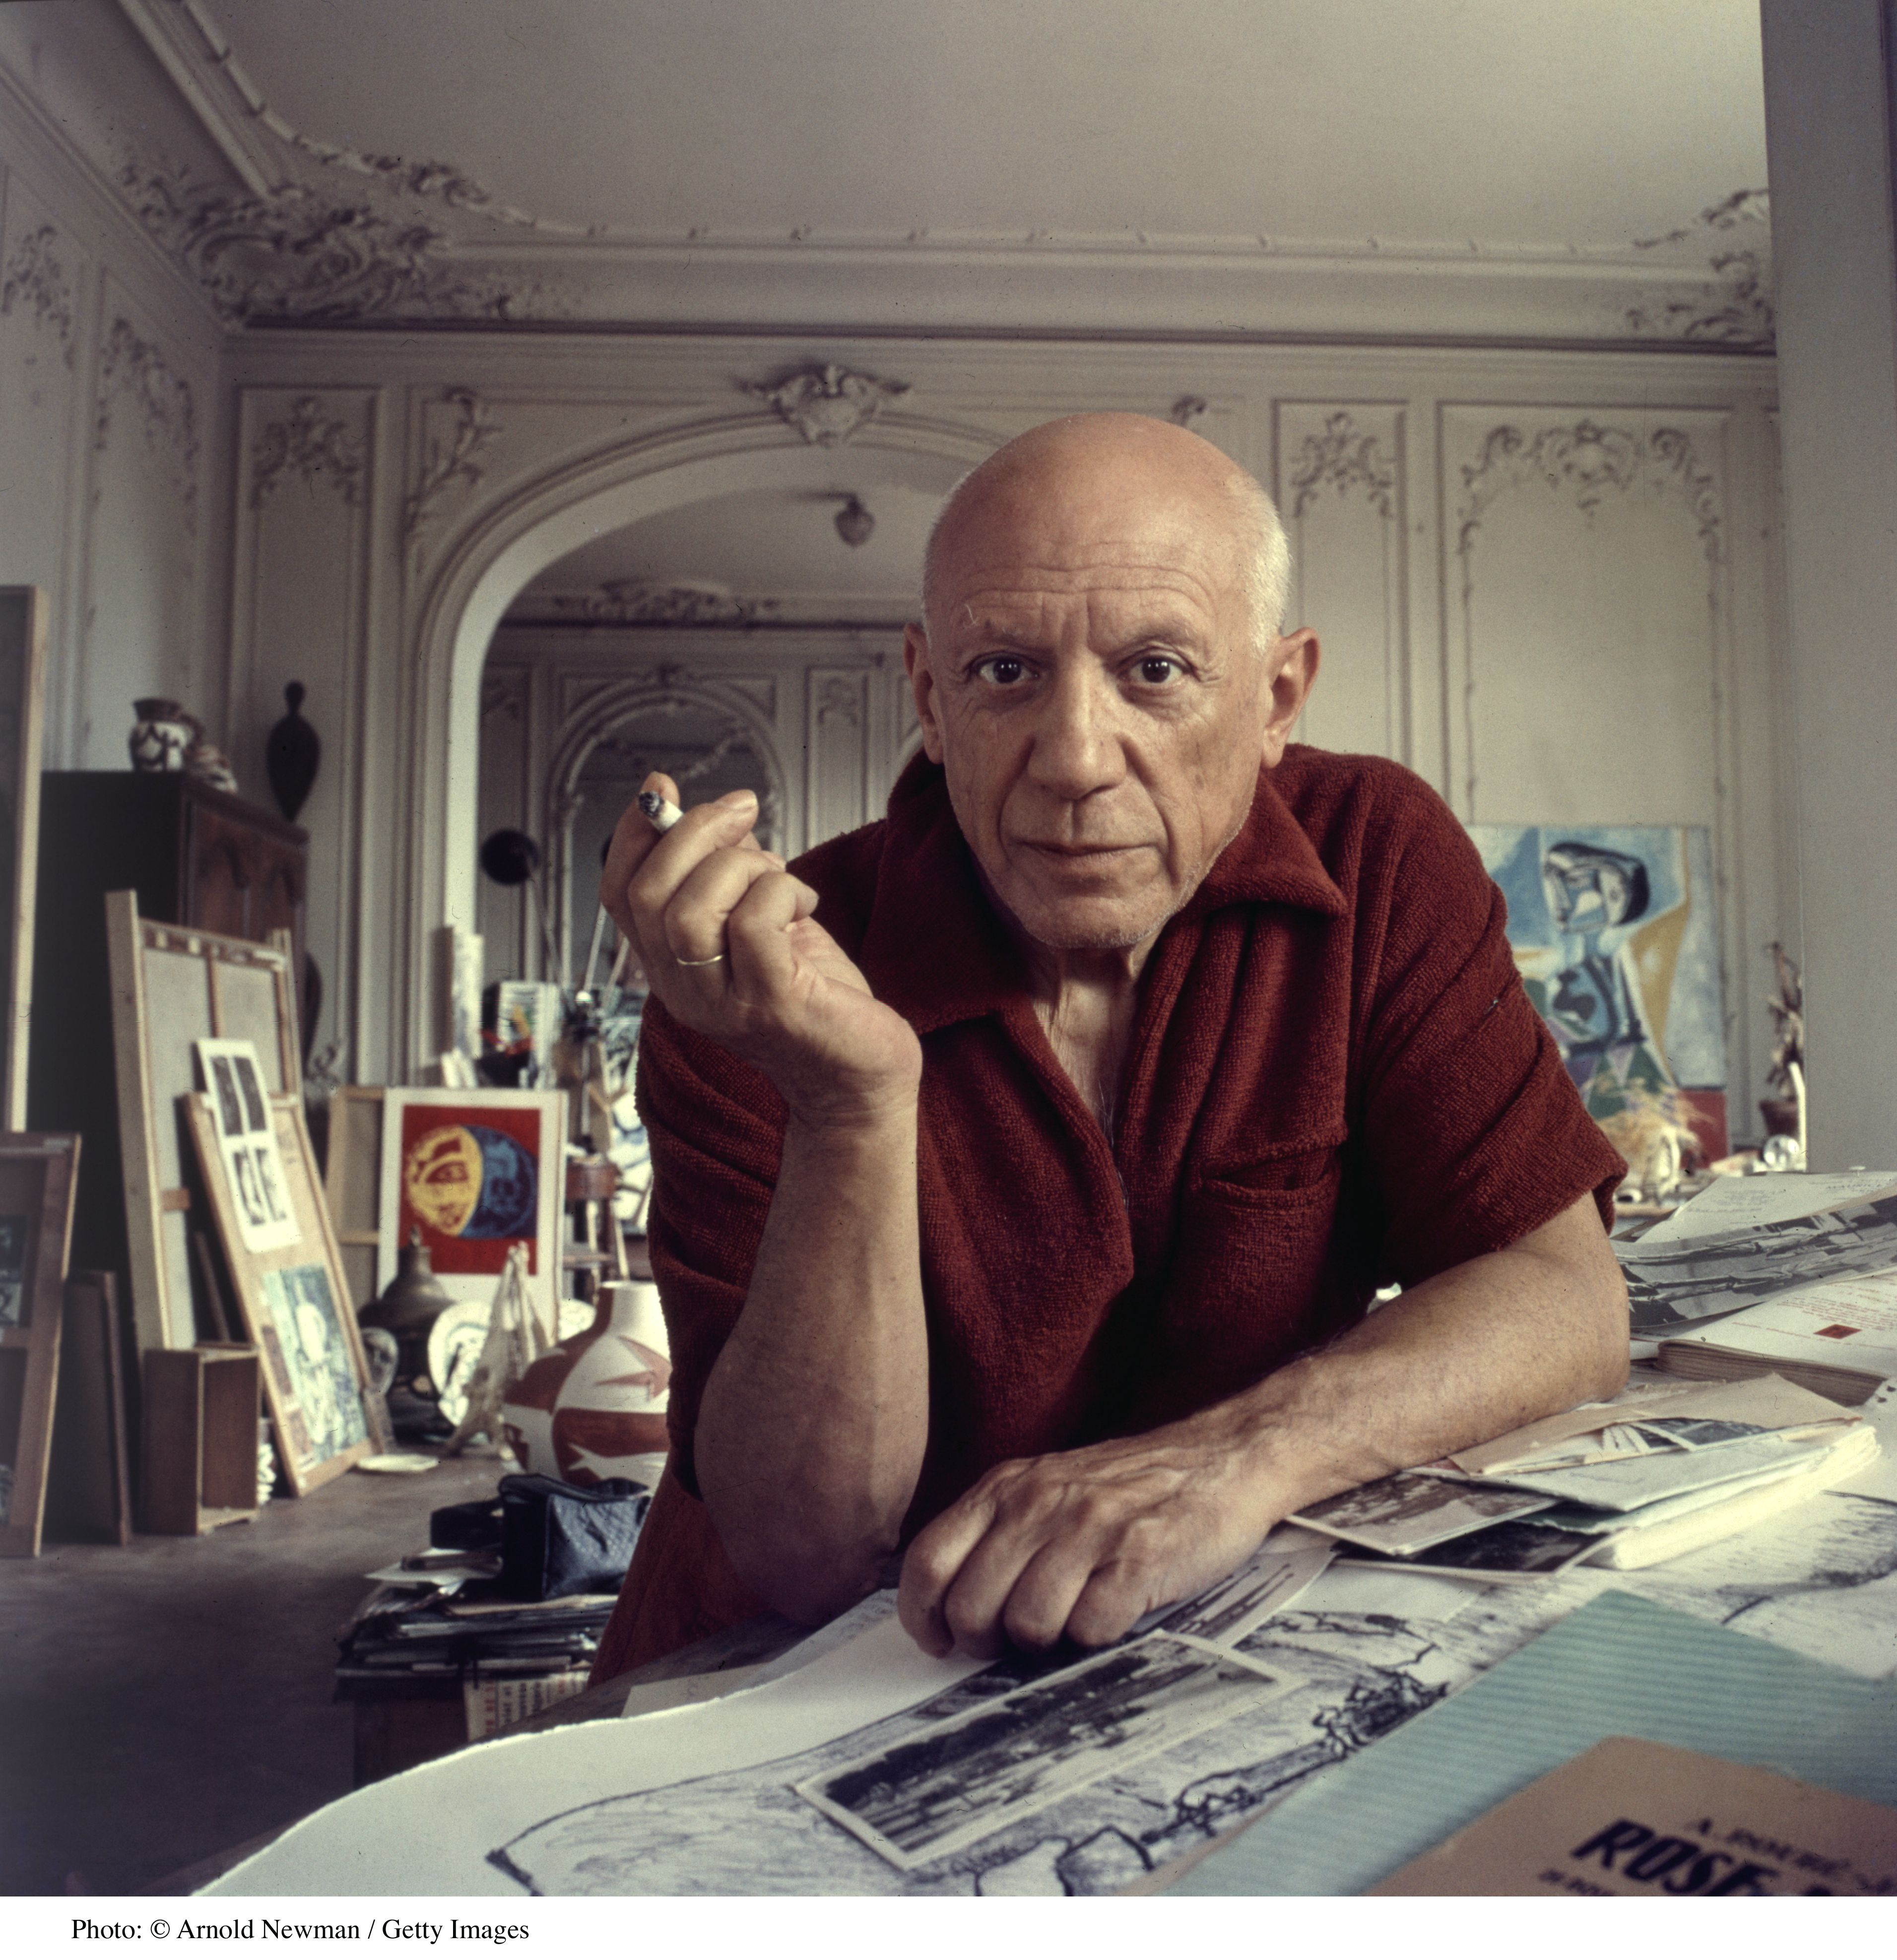 National Geographic Announces Pablo Picasso to Be Subject